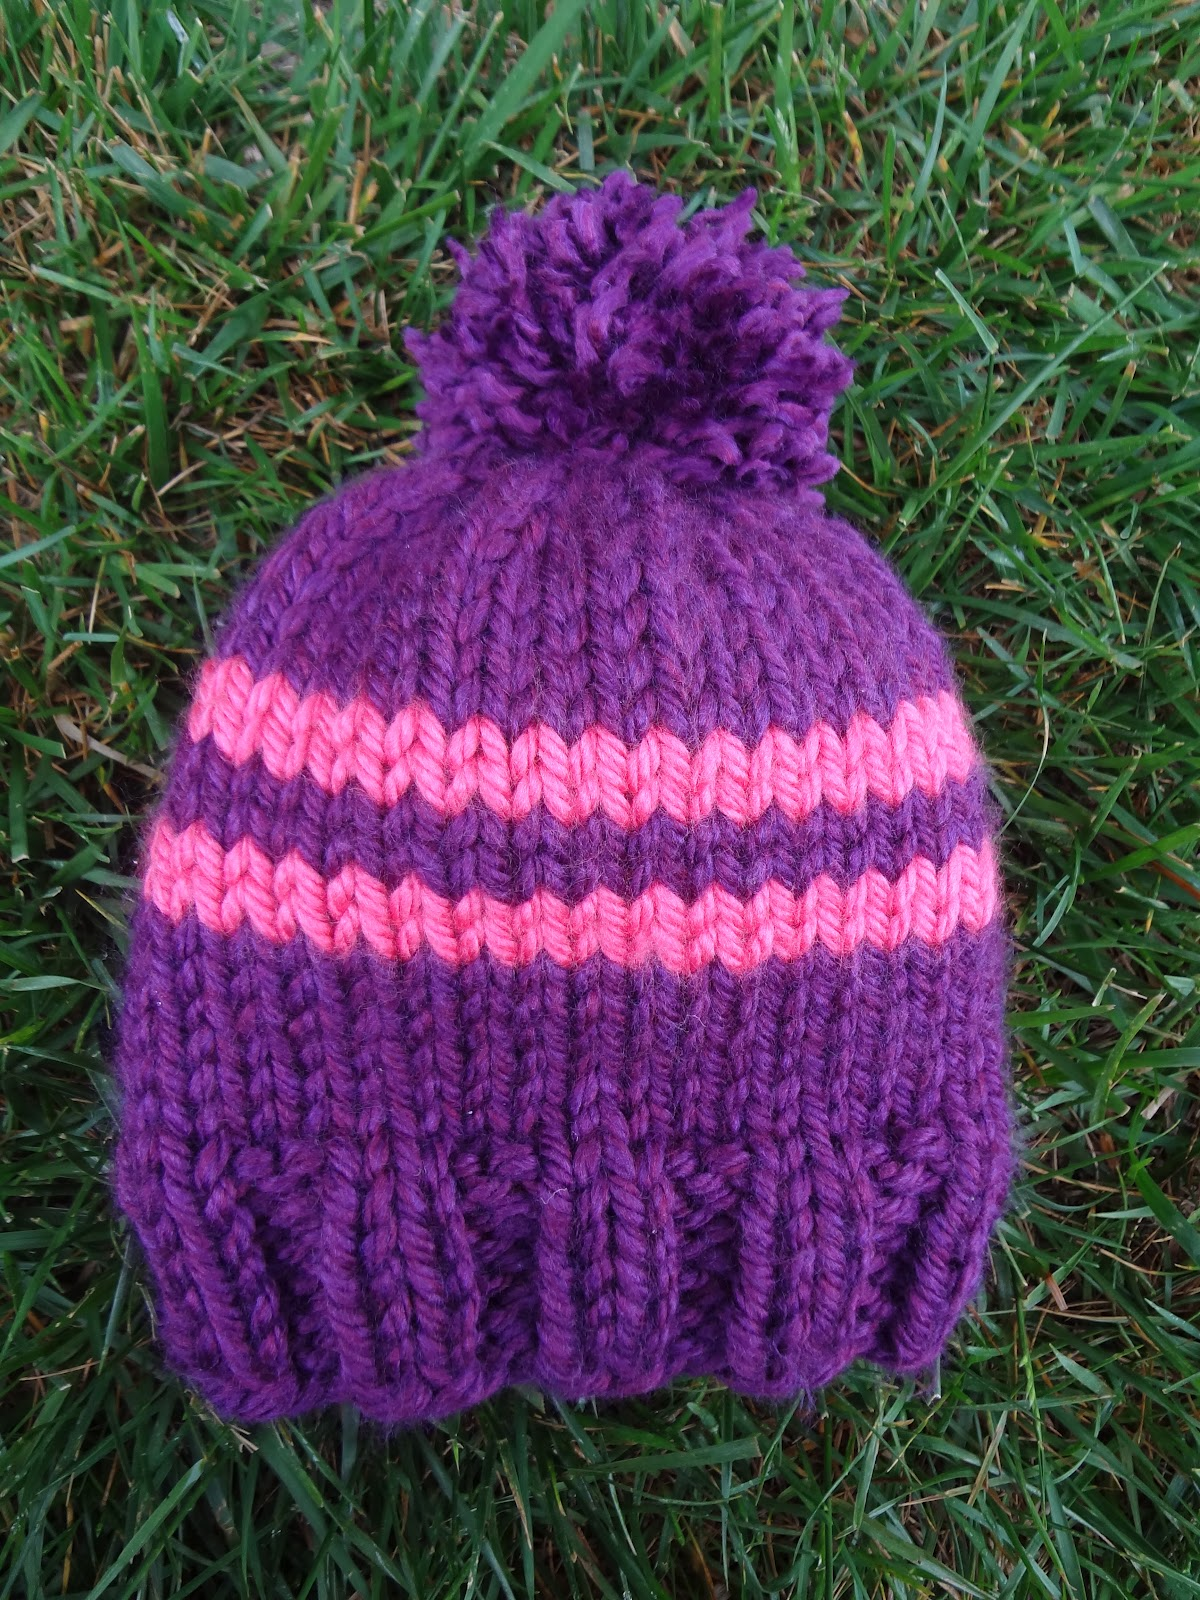 Free Knitting Pattern Images : Fiber Flux: Free Knitting Pattern! Preschooler Rugby Hat